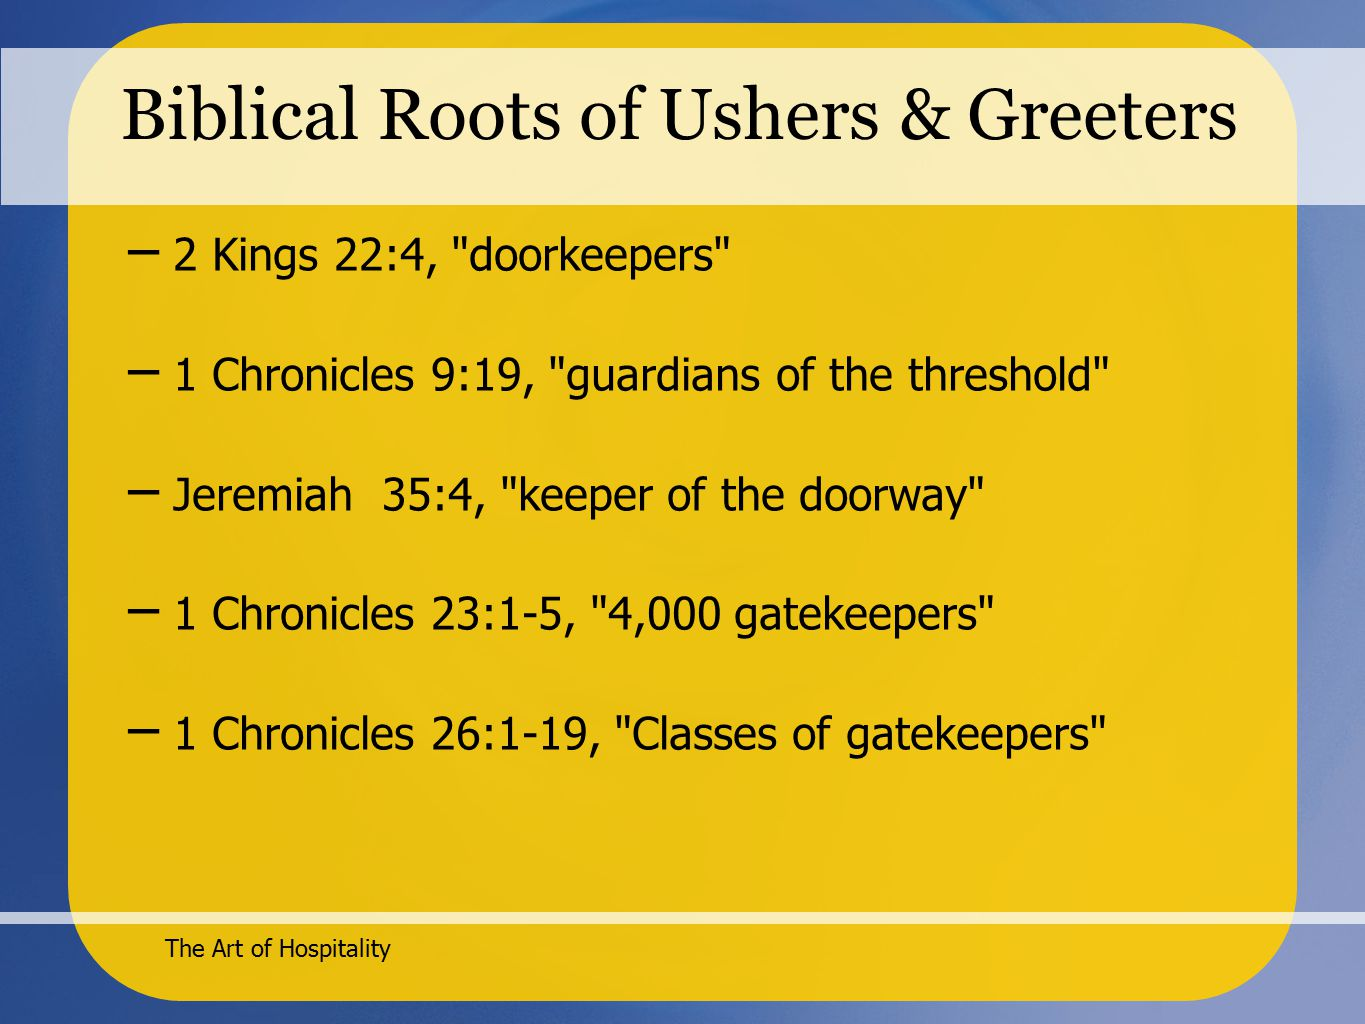 The Art of Hospitality Biblical Roots of Ushers & Greeters – 2 Kings 22:4, doorkeepers – 1 Chronicles 9:19, guardians of the threshold – Jeremiah 35:4, keeper of the doorway – 1 Chronicles 23:1-5, 4,000 gatekeepers – 1 Chronicles 26:1-19, Classes of gatekeepers